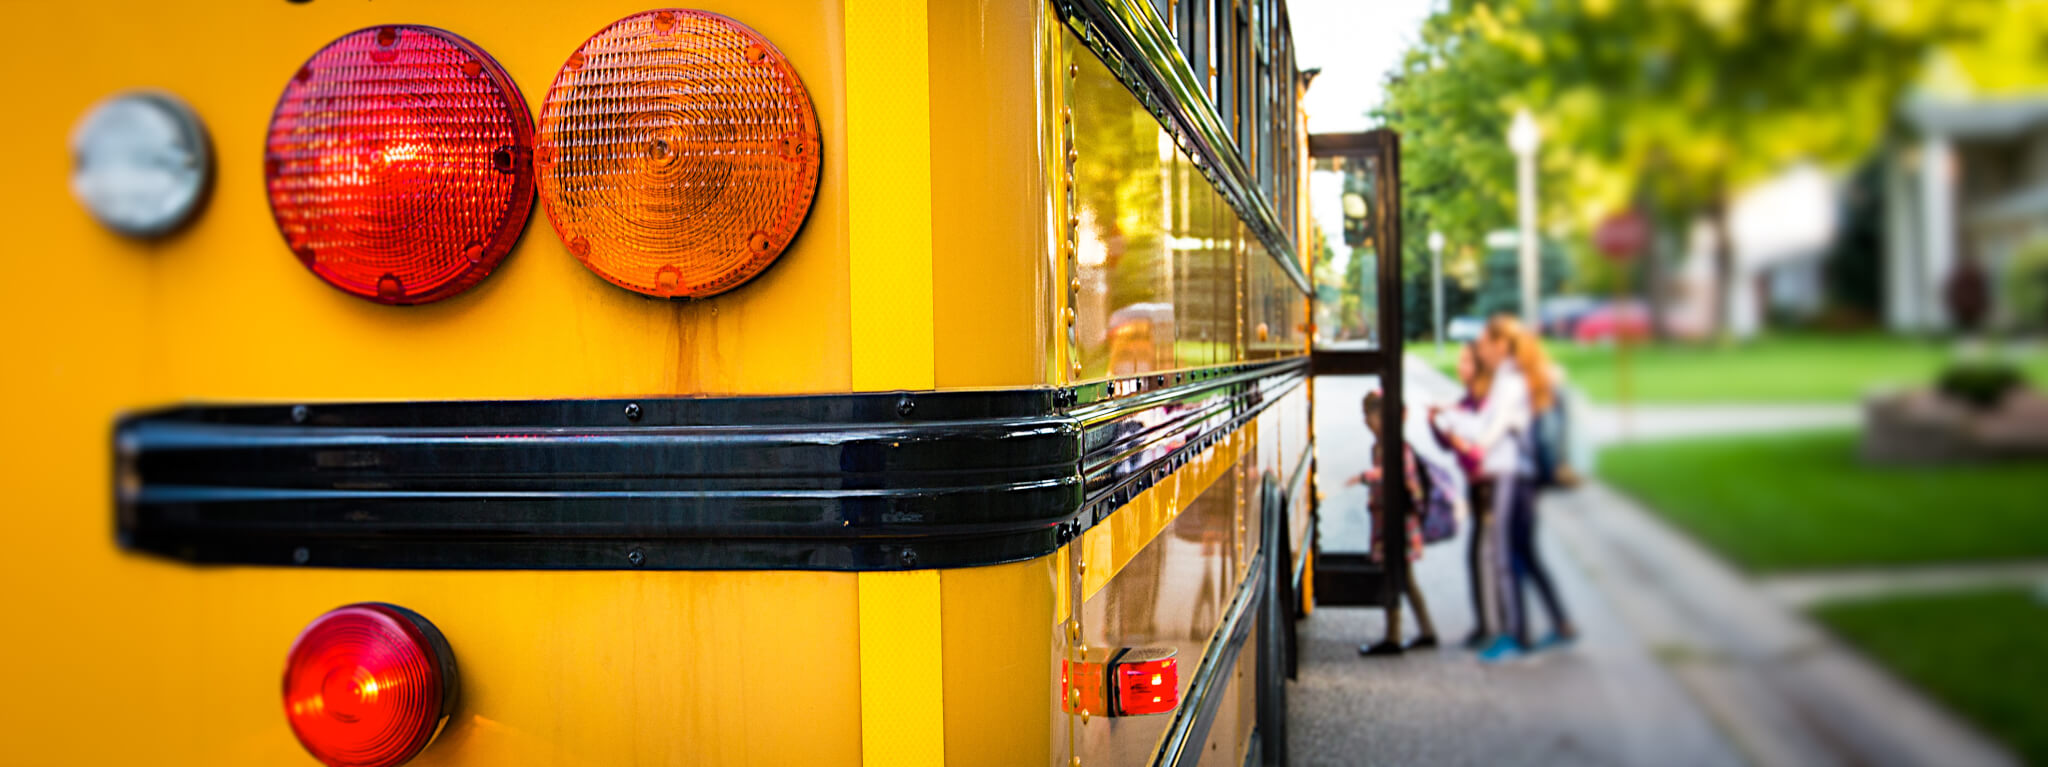 Be Prepared Back-to-School Countdown bus